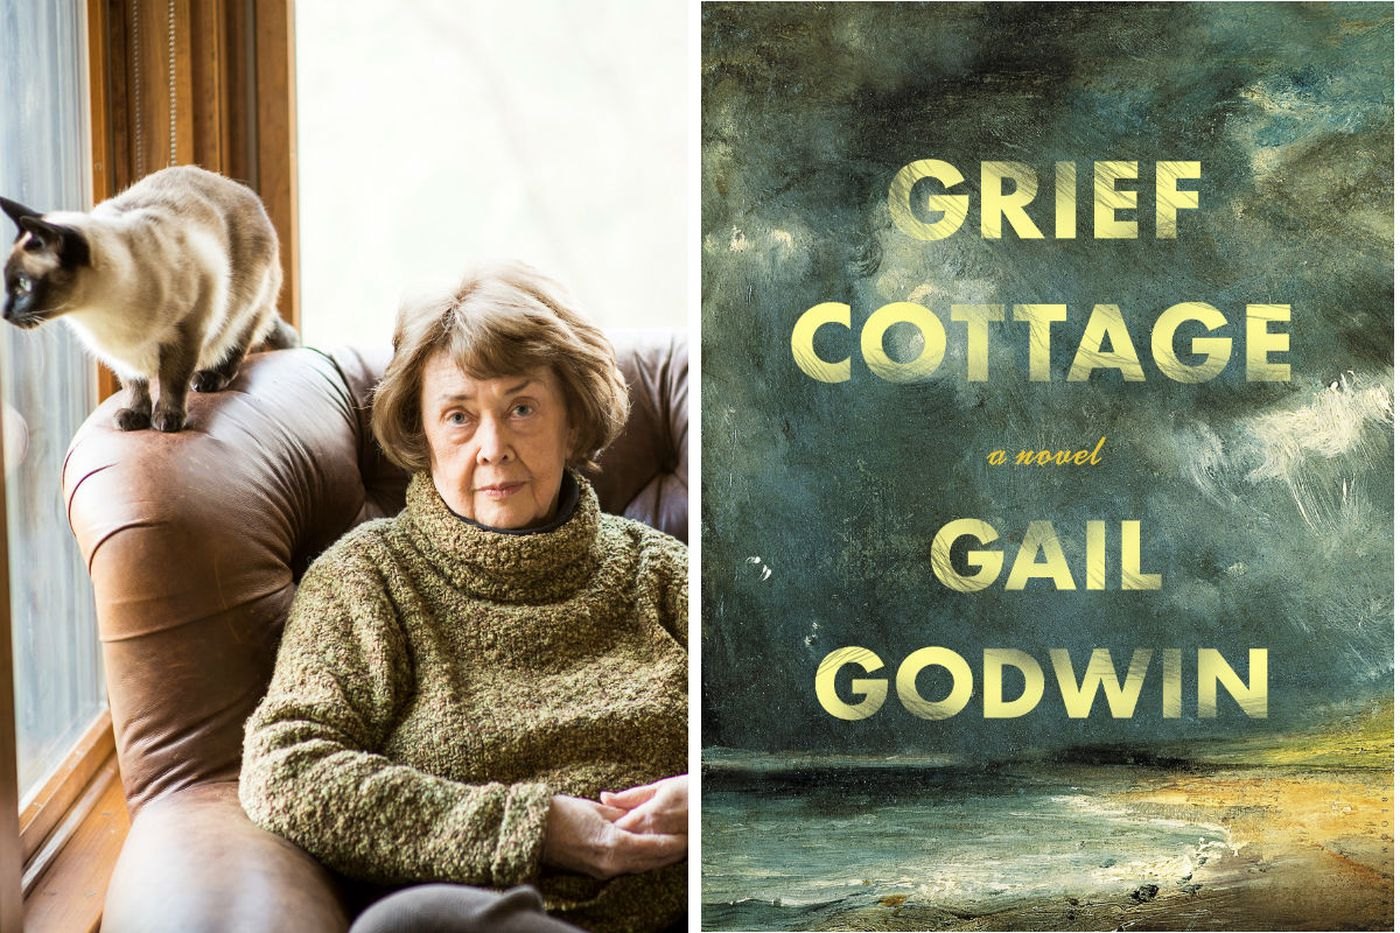 'Grief Cottage': A haunting tale from Gail Godwin